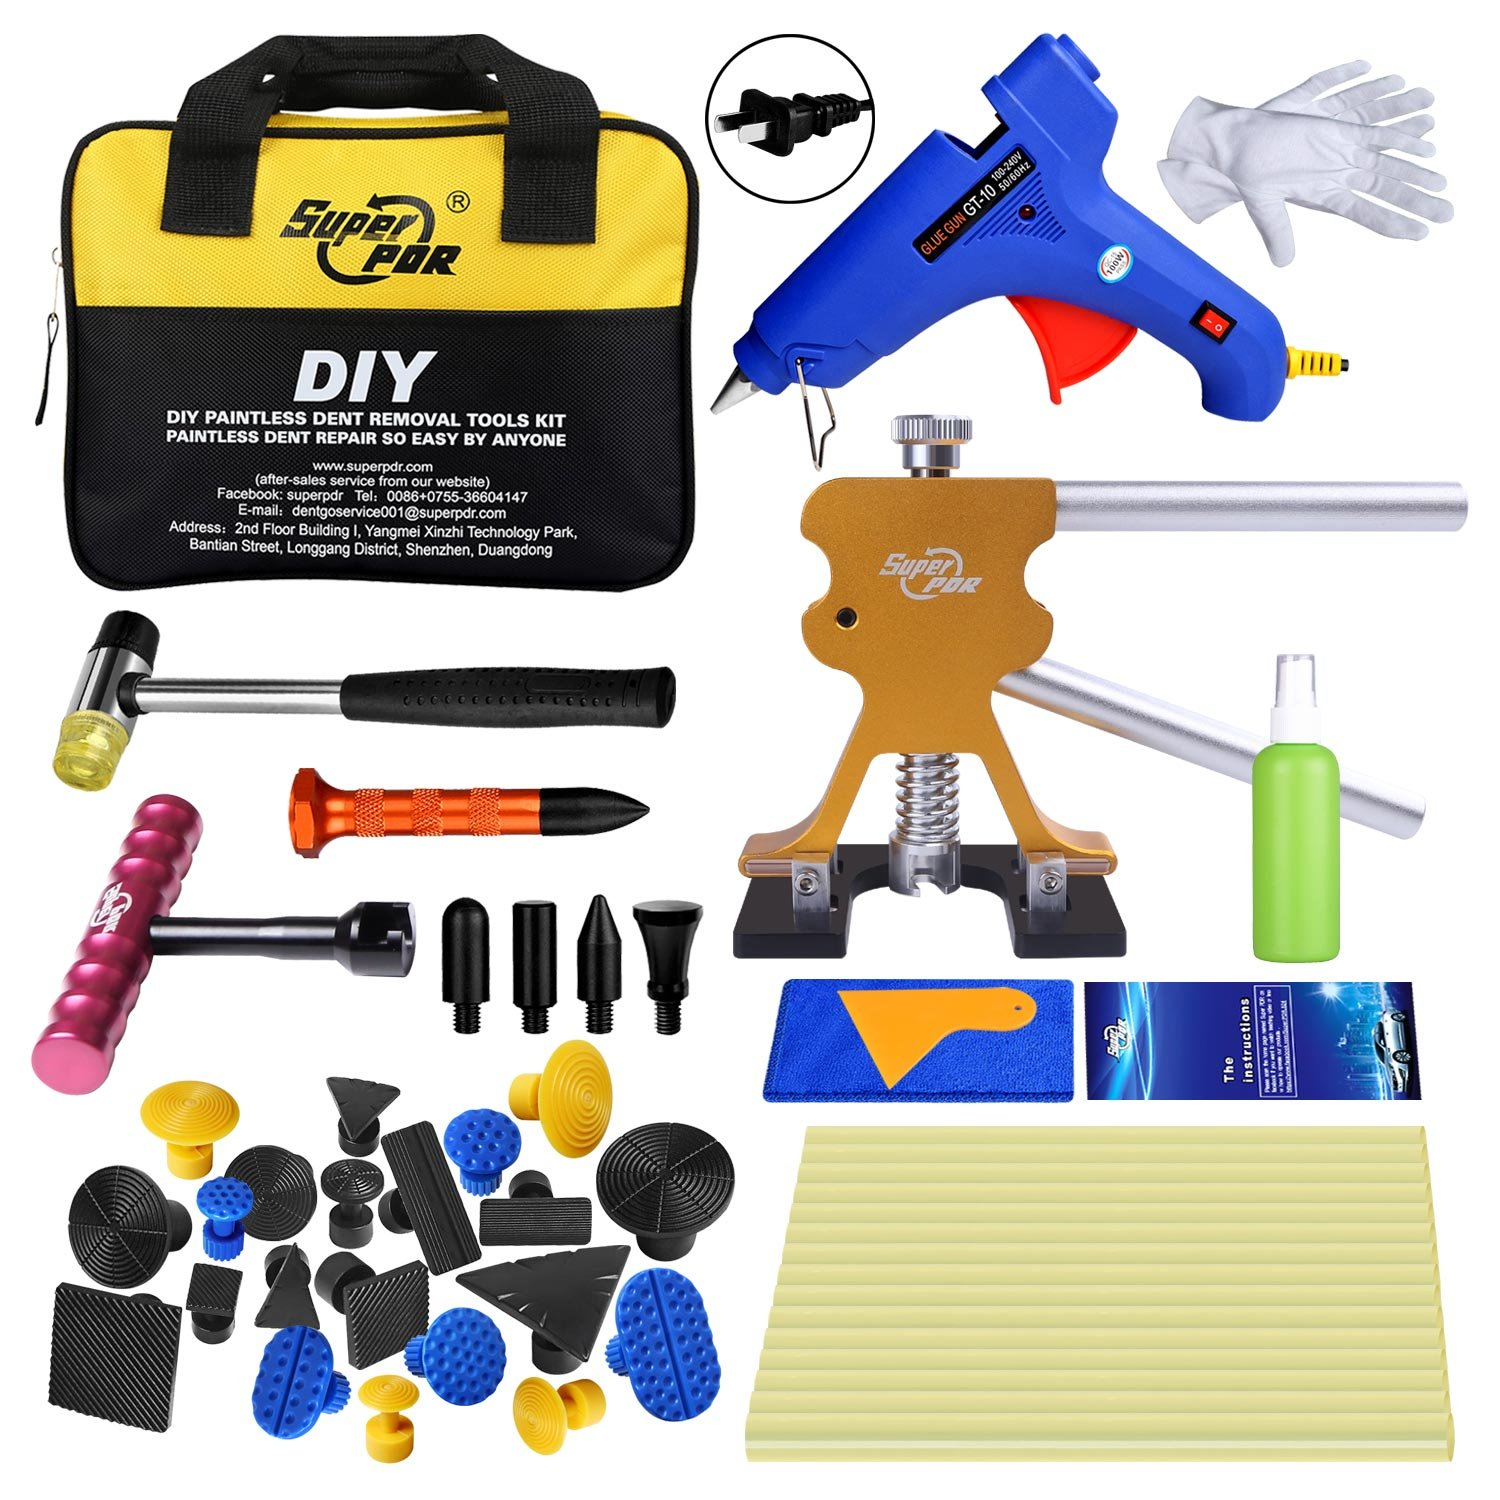 Super PDR Paintless Dent Repair (PDR Tools) Car Dent Puller Kit Dent Removal Tools Dent Lifter Kit with Tool Bag